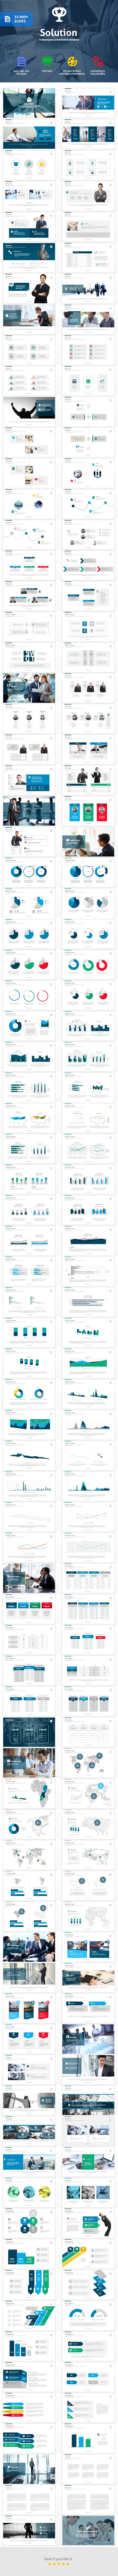 Solution Powerpoint Presentation Template Powerpoint Templates